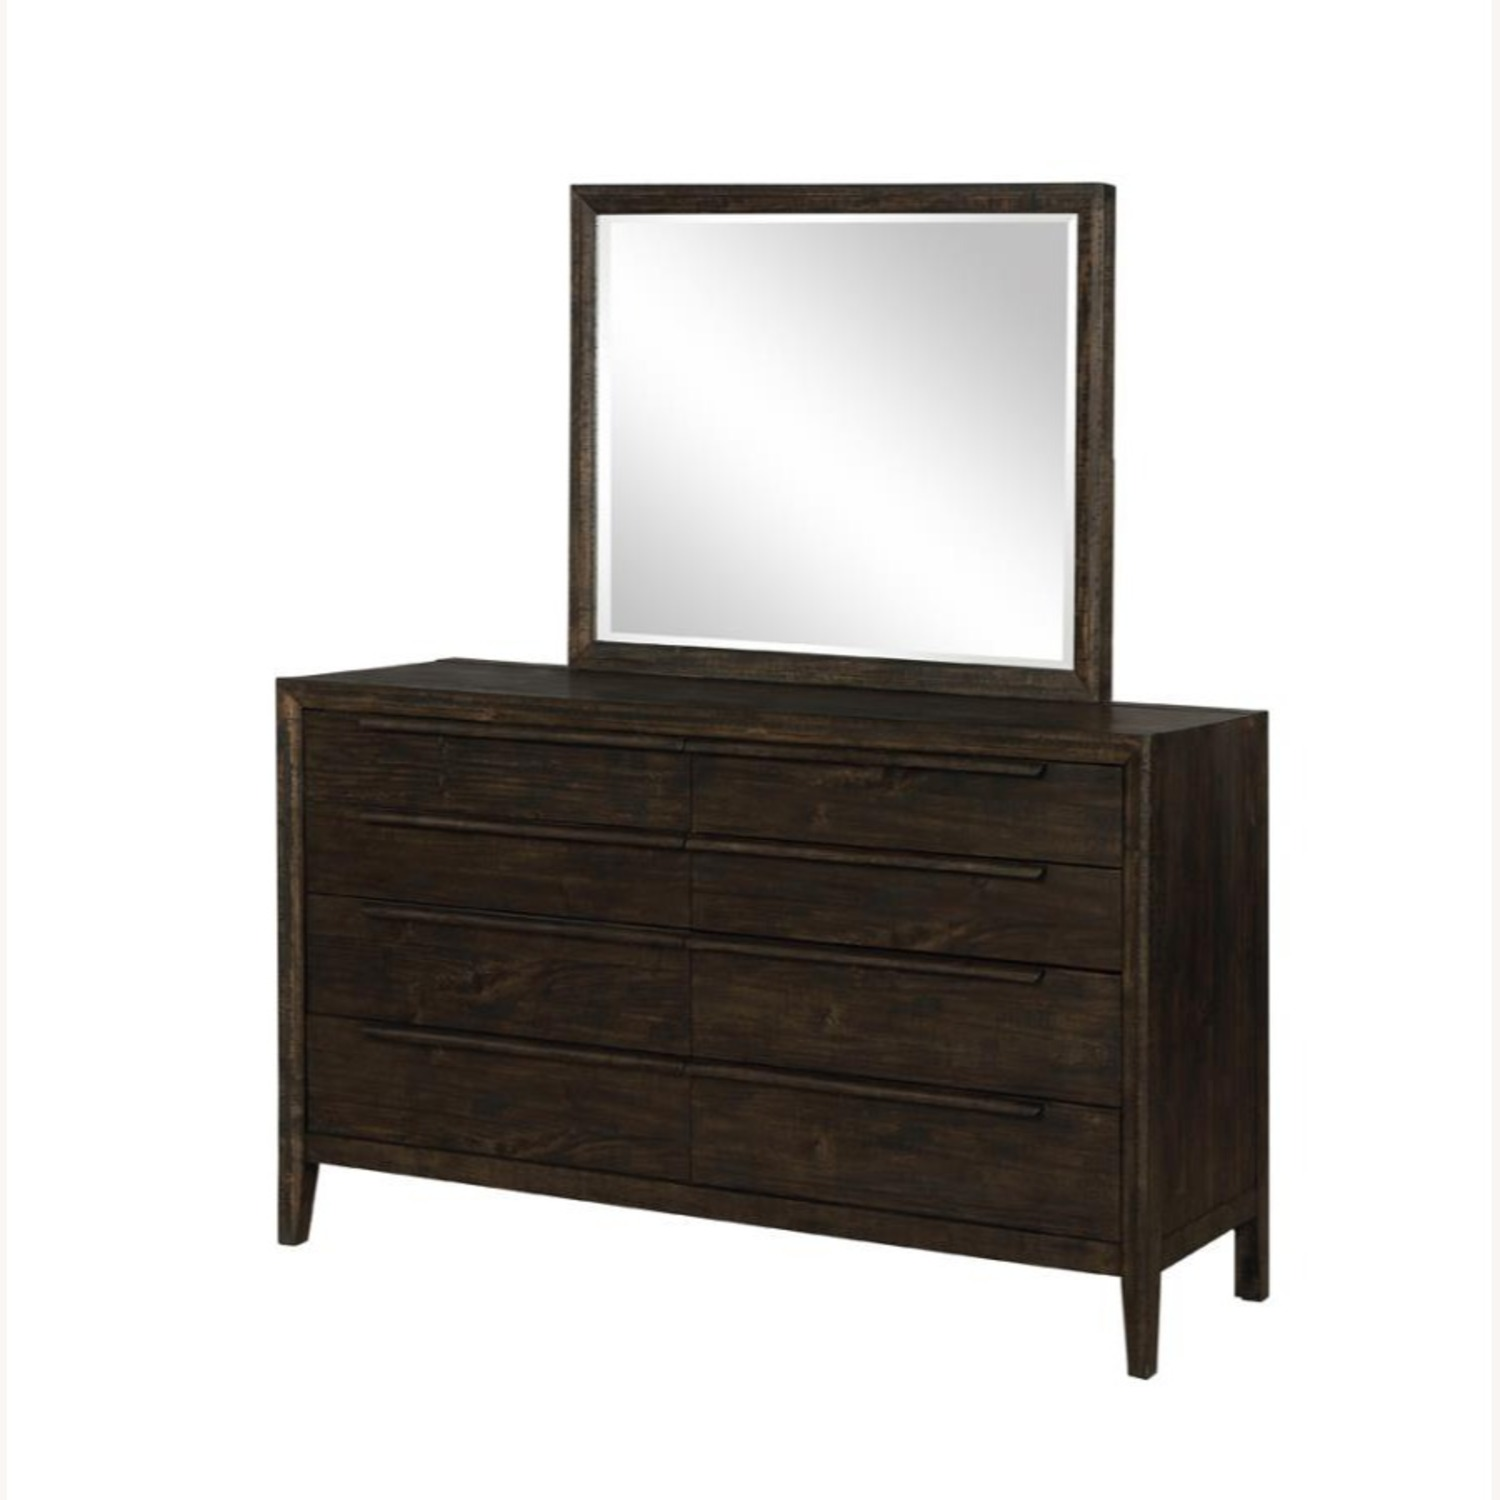 Mirror In French Press Wood Finish - image-0